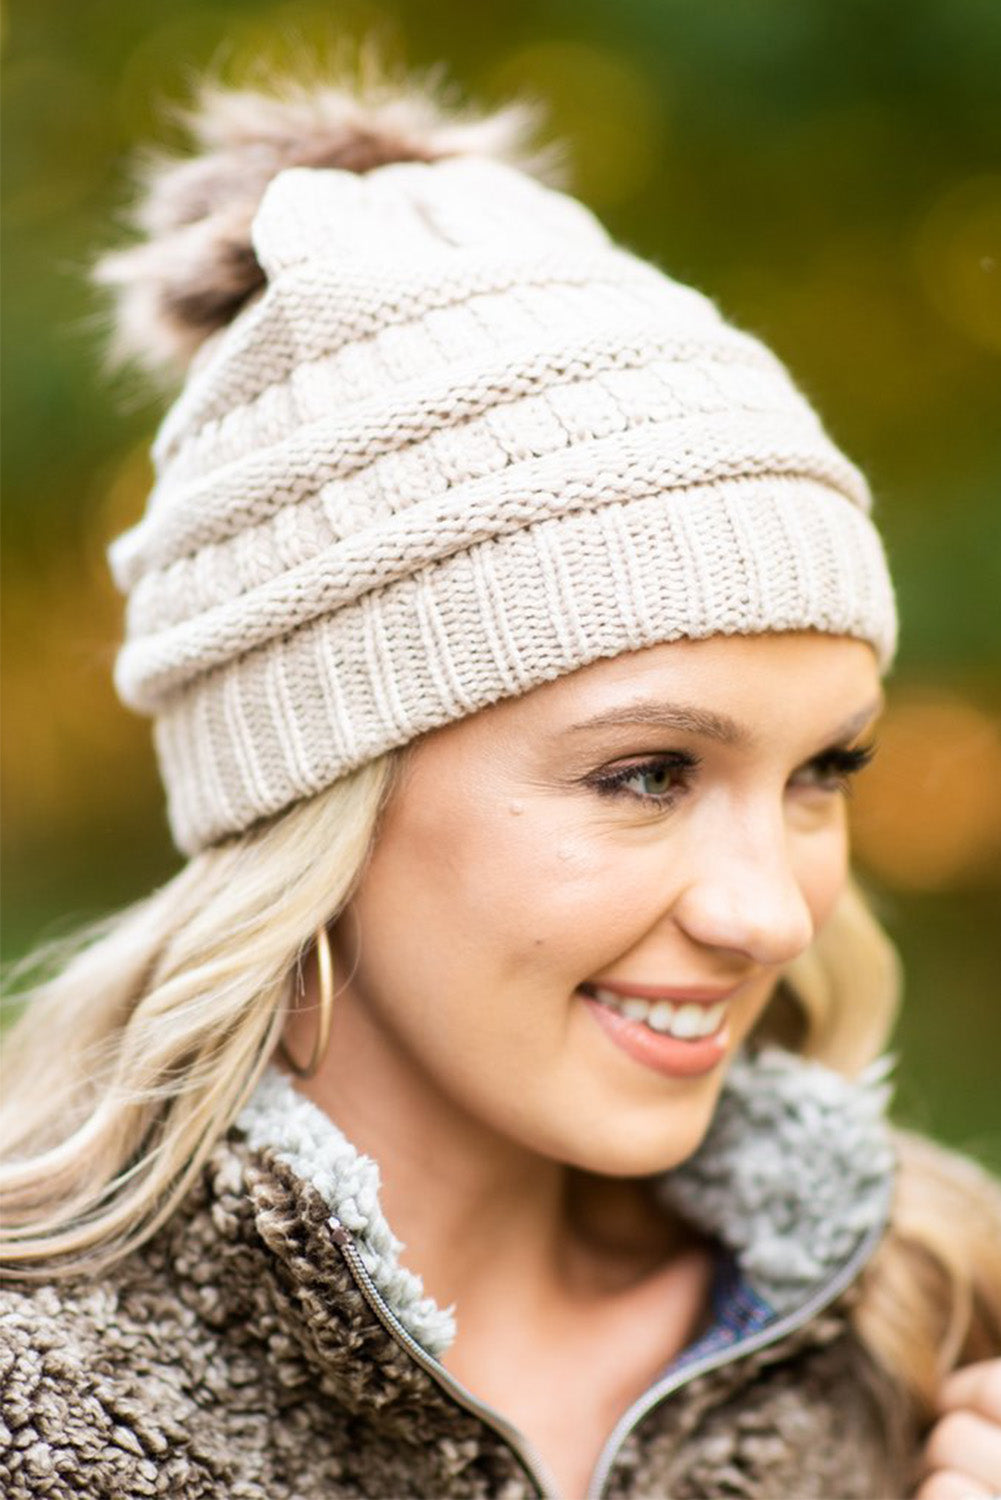 Apricot Outdoor Cable Knit Beanie with Pompom Hats & Caps Discount Designer Fashion Clothes Shoes Bags Women Men Kids Children Black Owned Business